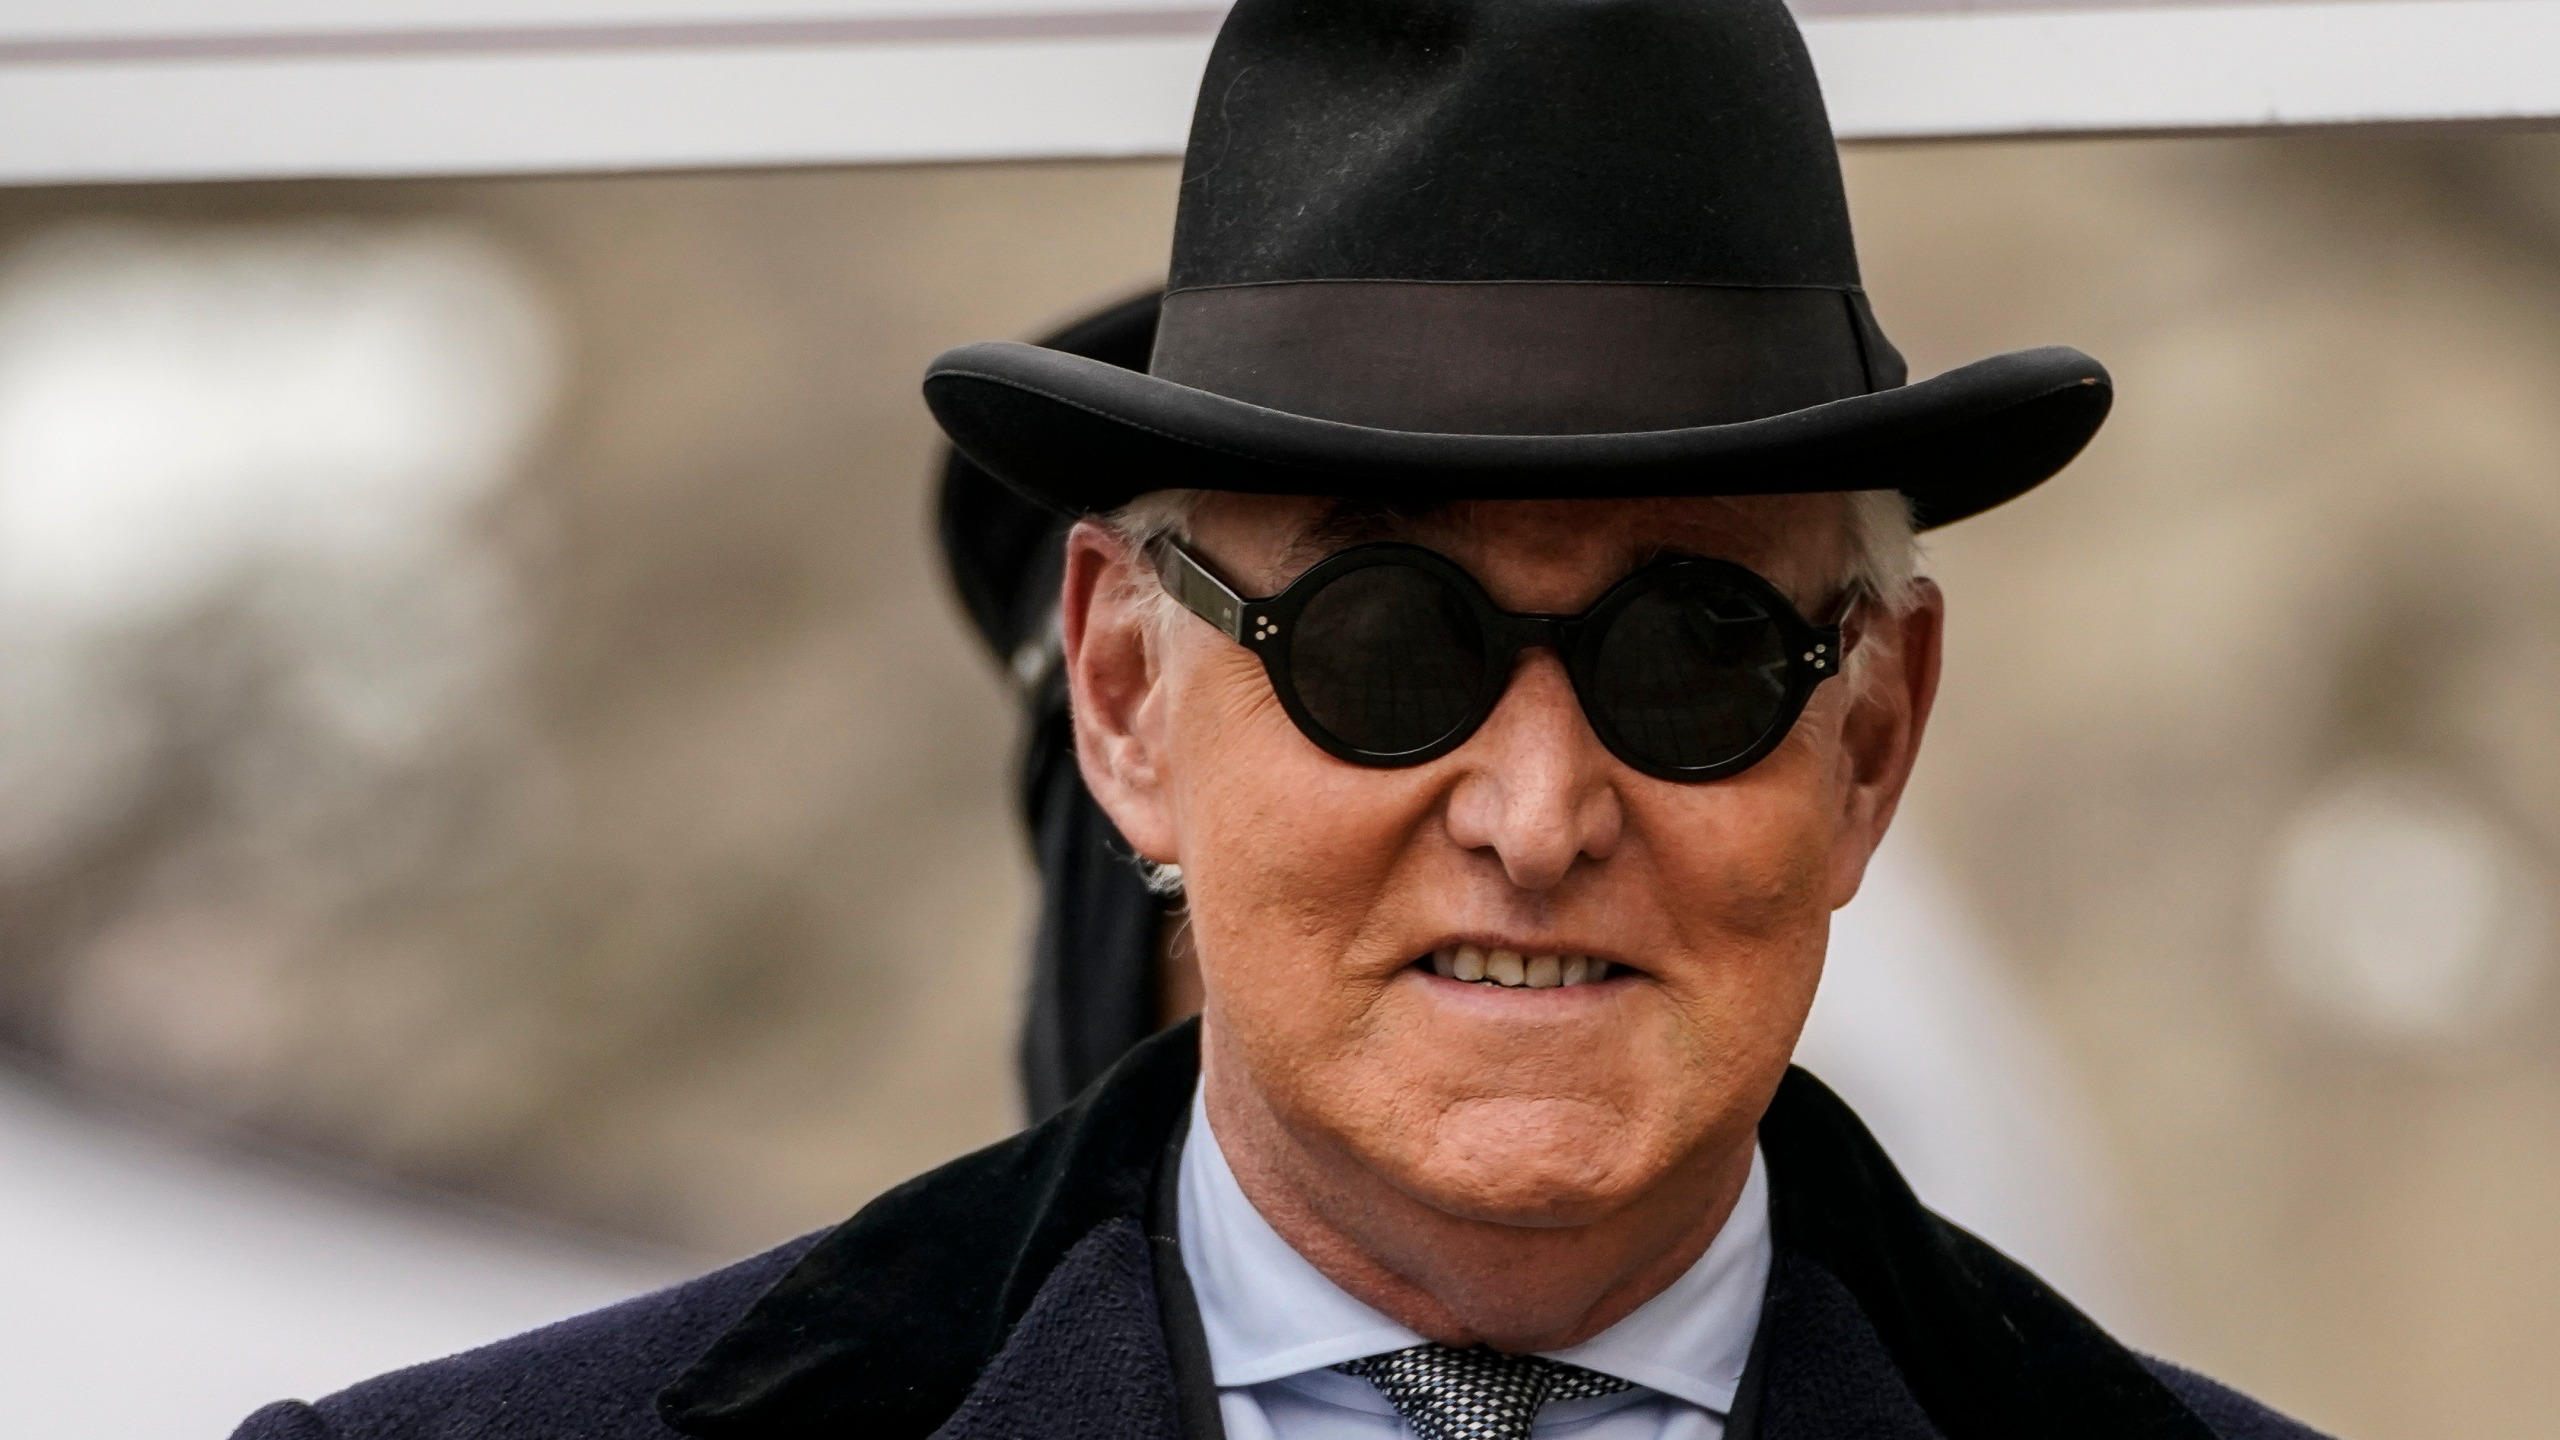 Roger Stone (Photo by Drew Angerer/Getty Images)